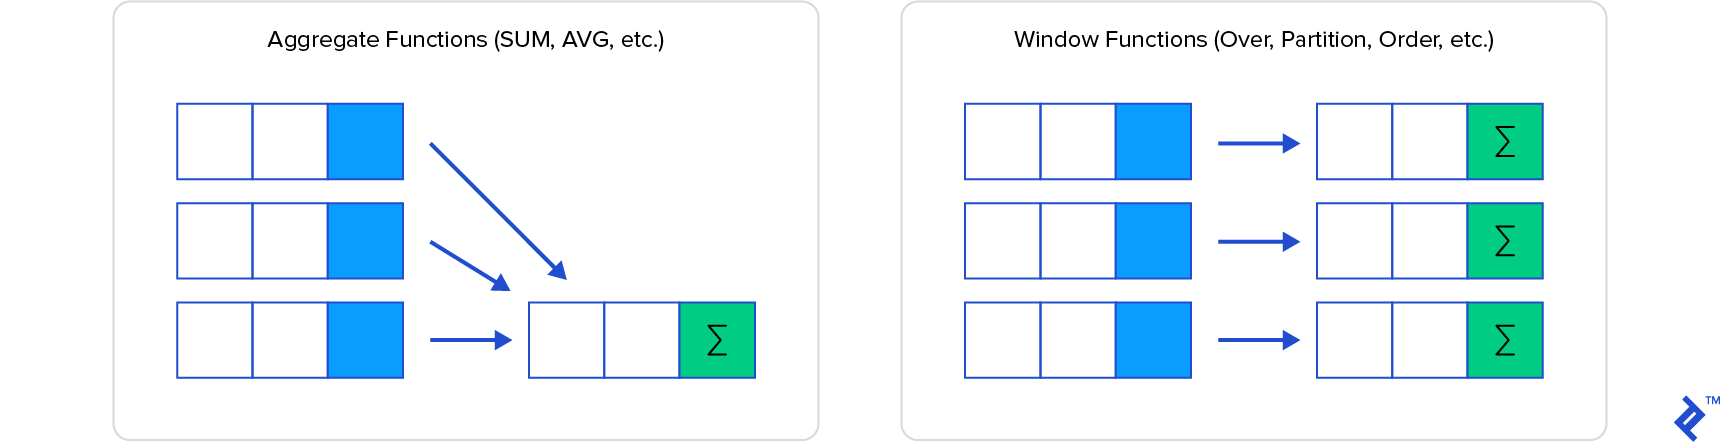 Diagram comparing aggregate functions and window functions